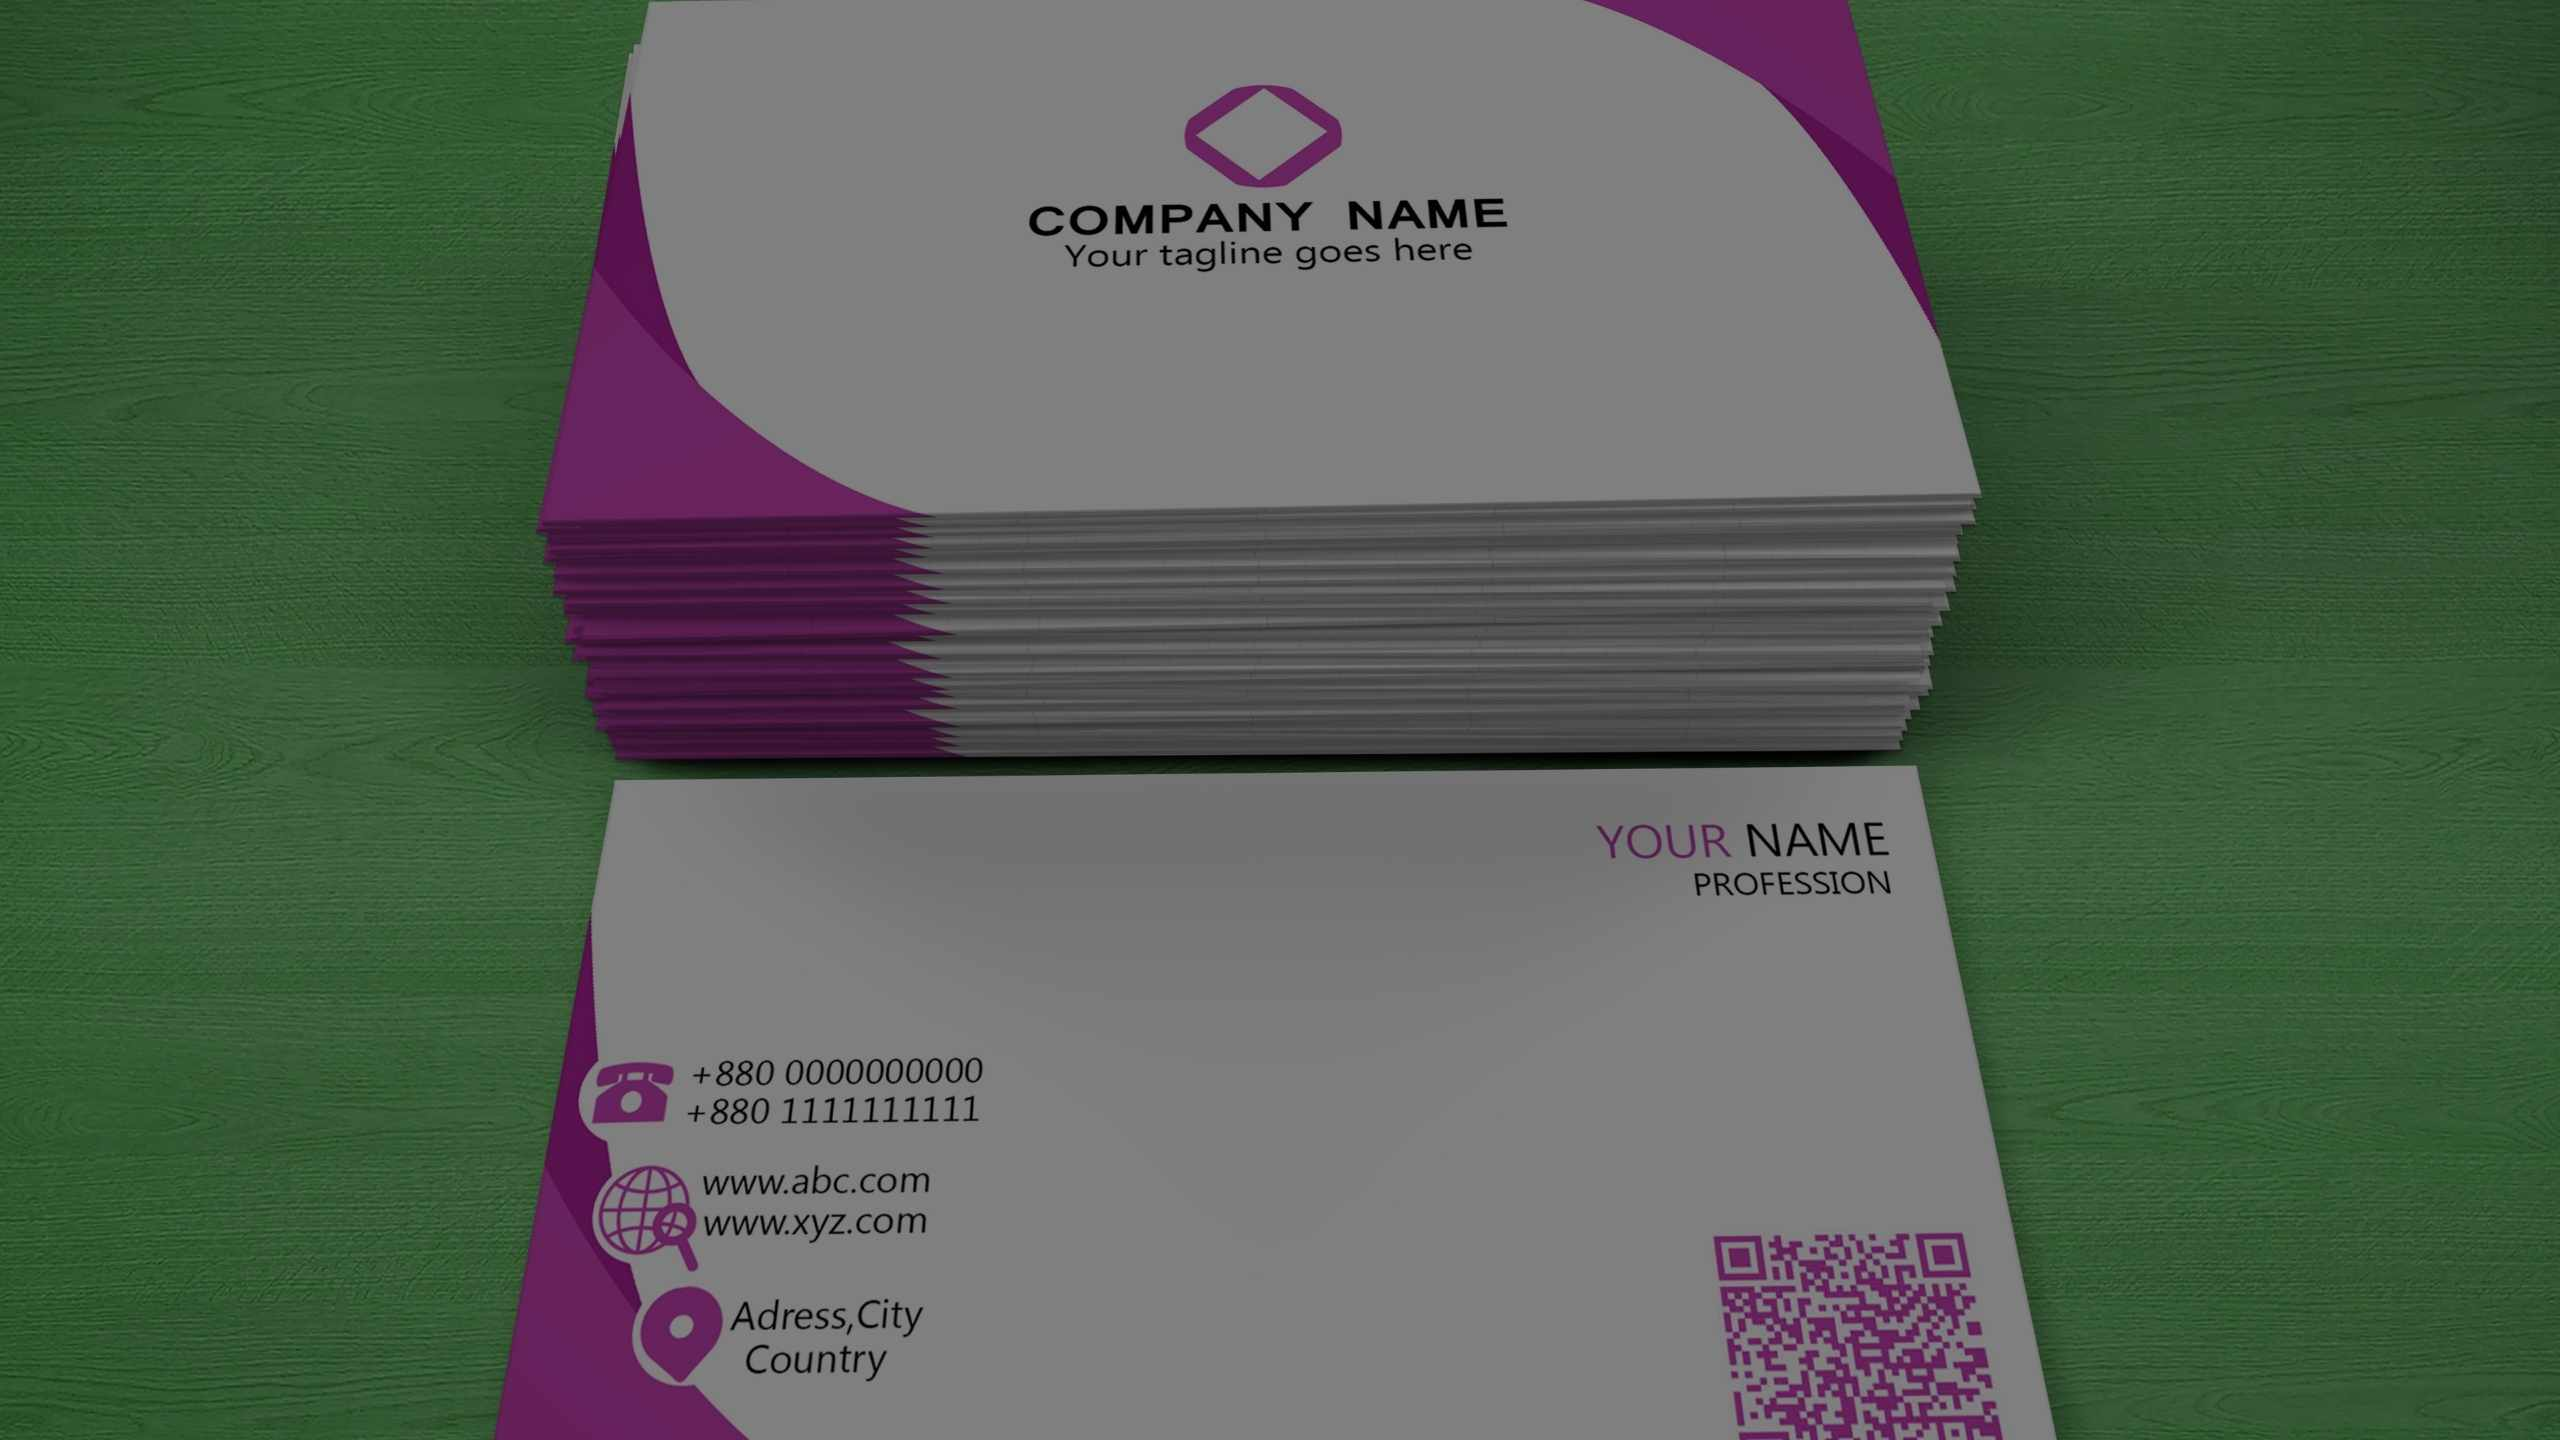 100 Business Cards For $19.09‬